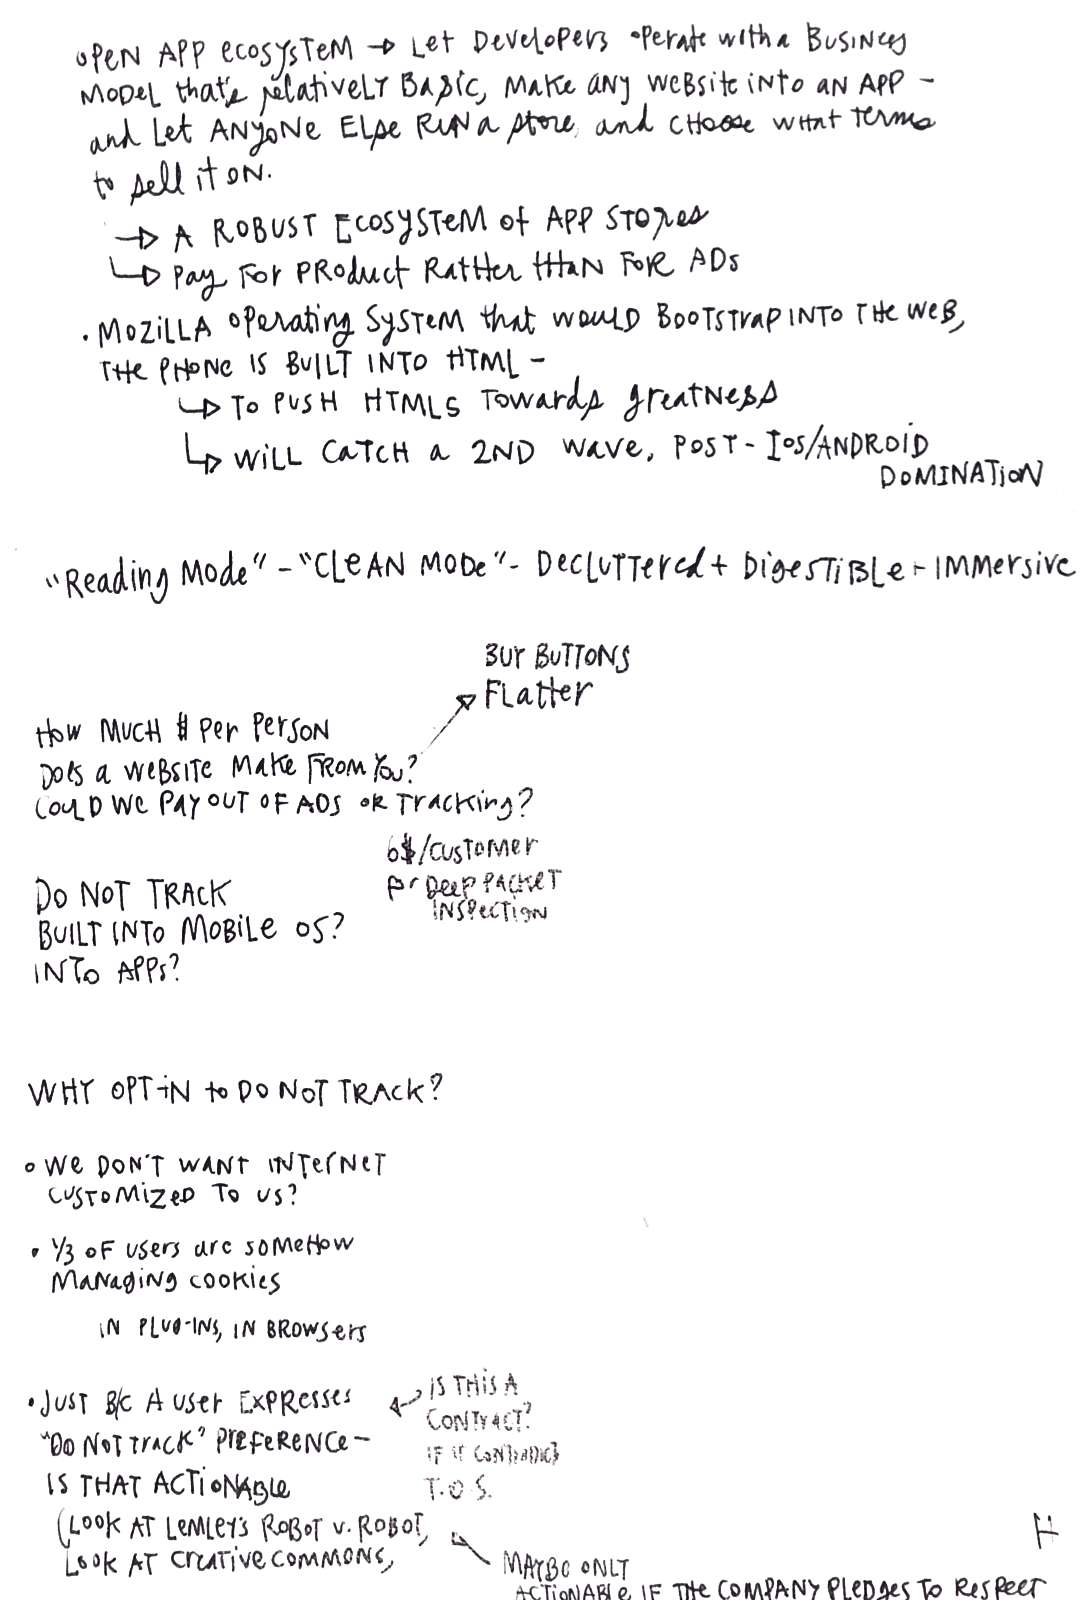 sketchnote on legal design and online privacy 5